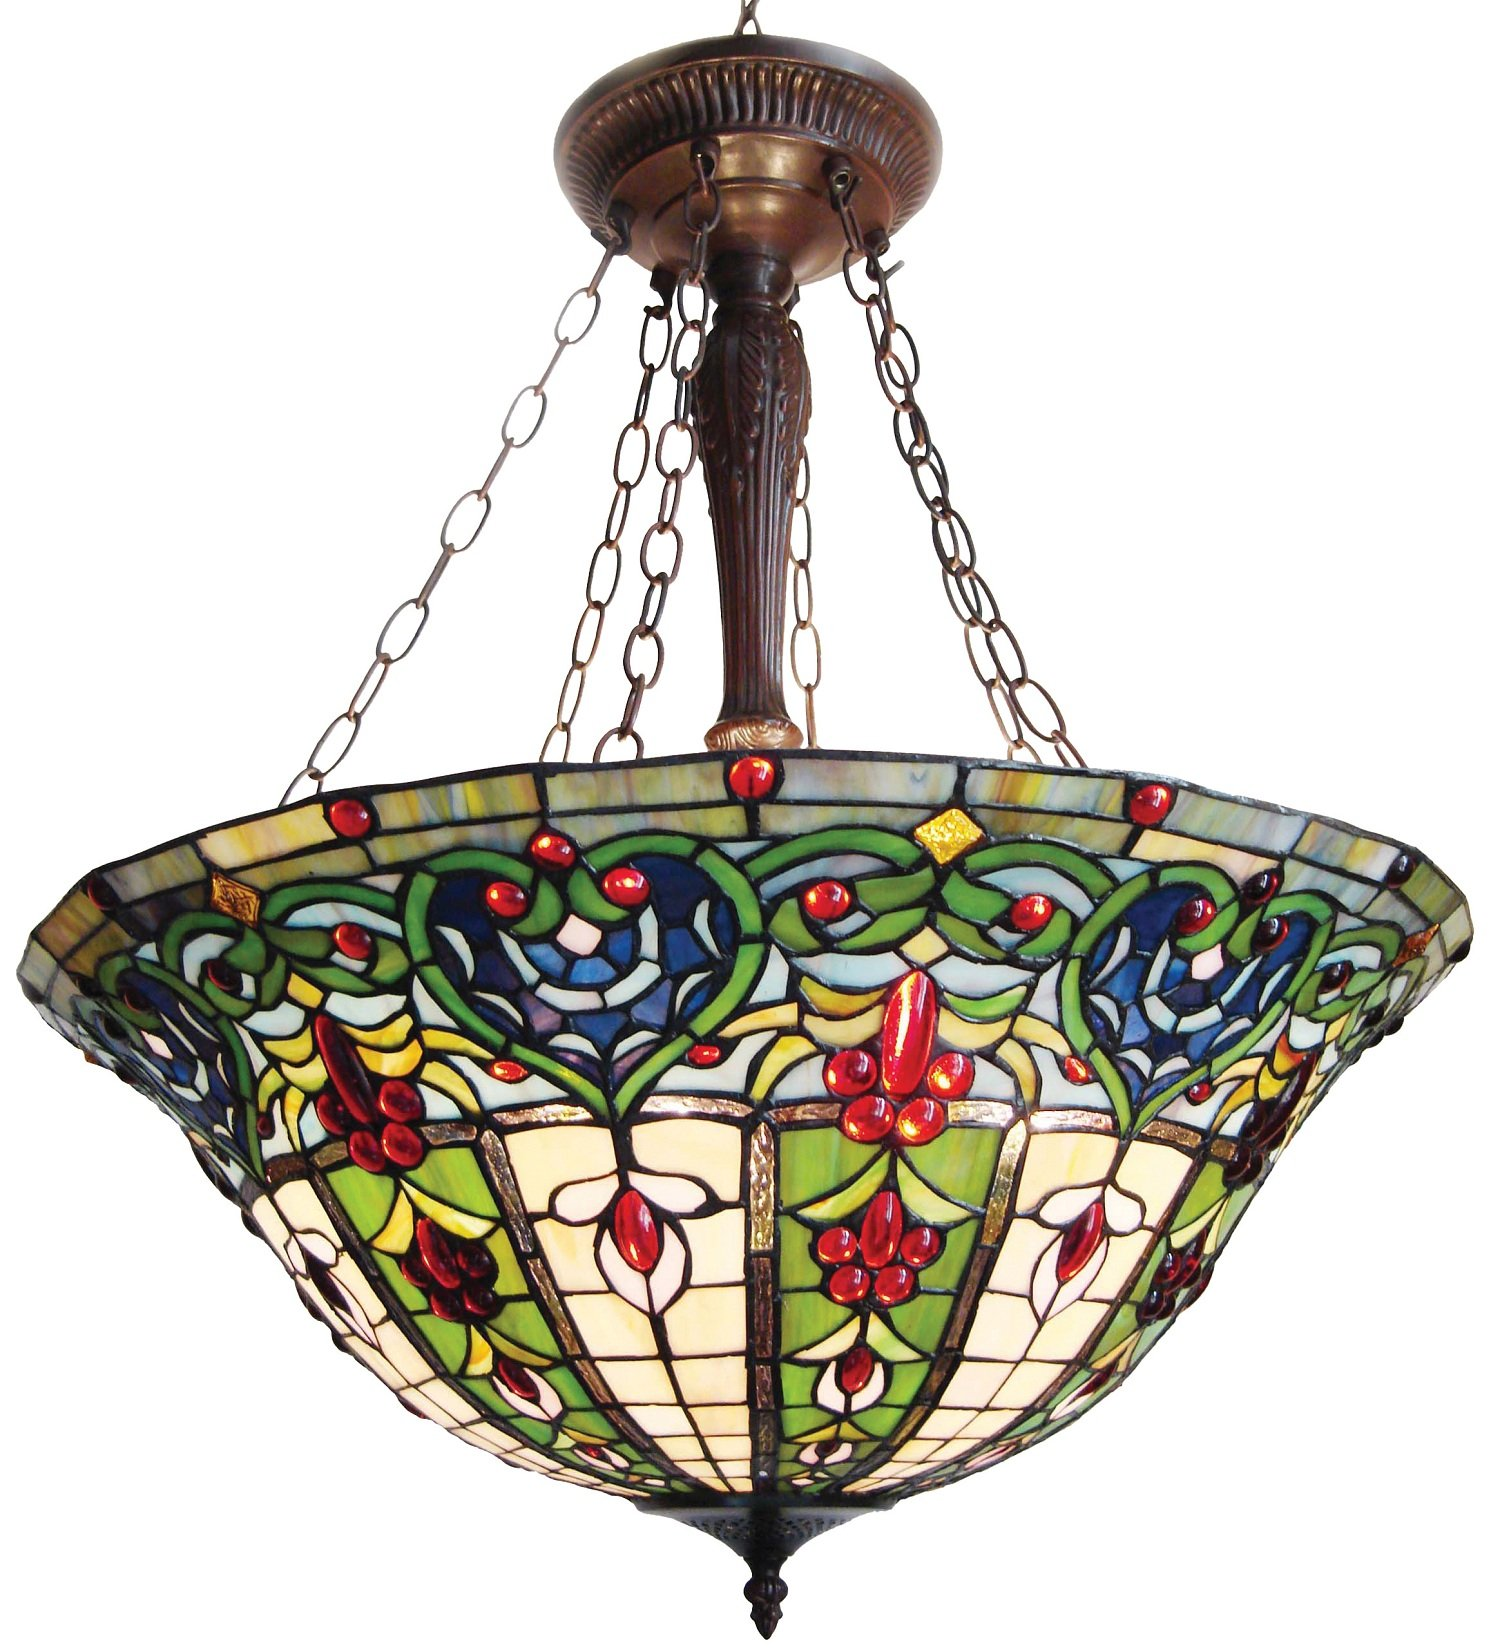 Chloe Lighting CH24A35G-UPD3 Tiffany-Style Victorian 3-Light Inverted Large Ceiling Pendant Fixture with 24-Inch Shade